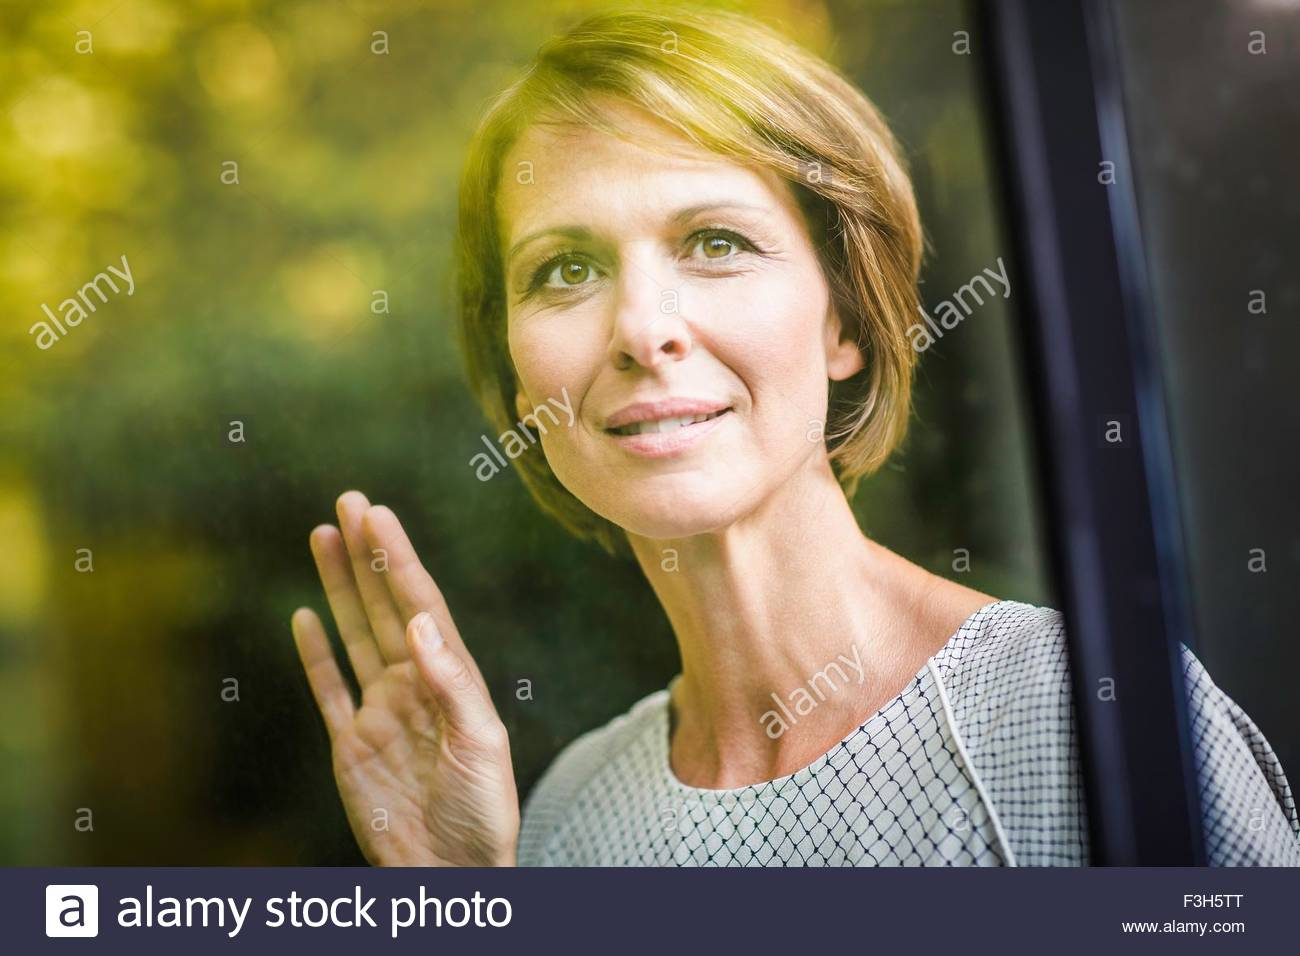 Mature woman looking through window of new house - Stock Image